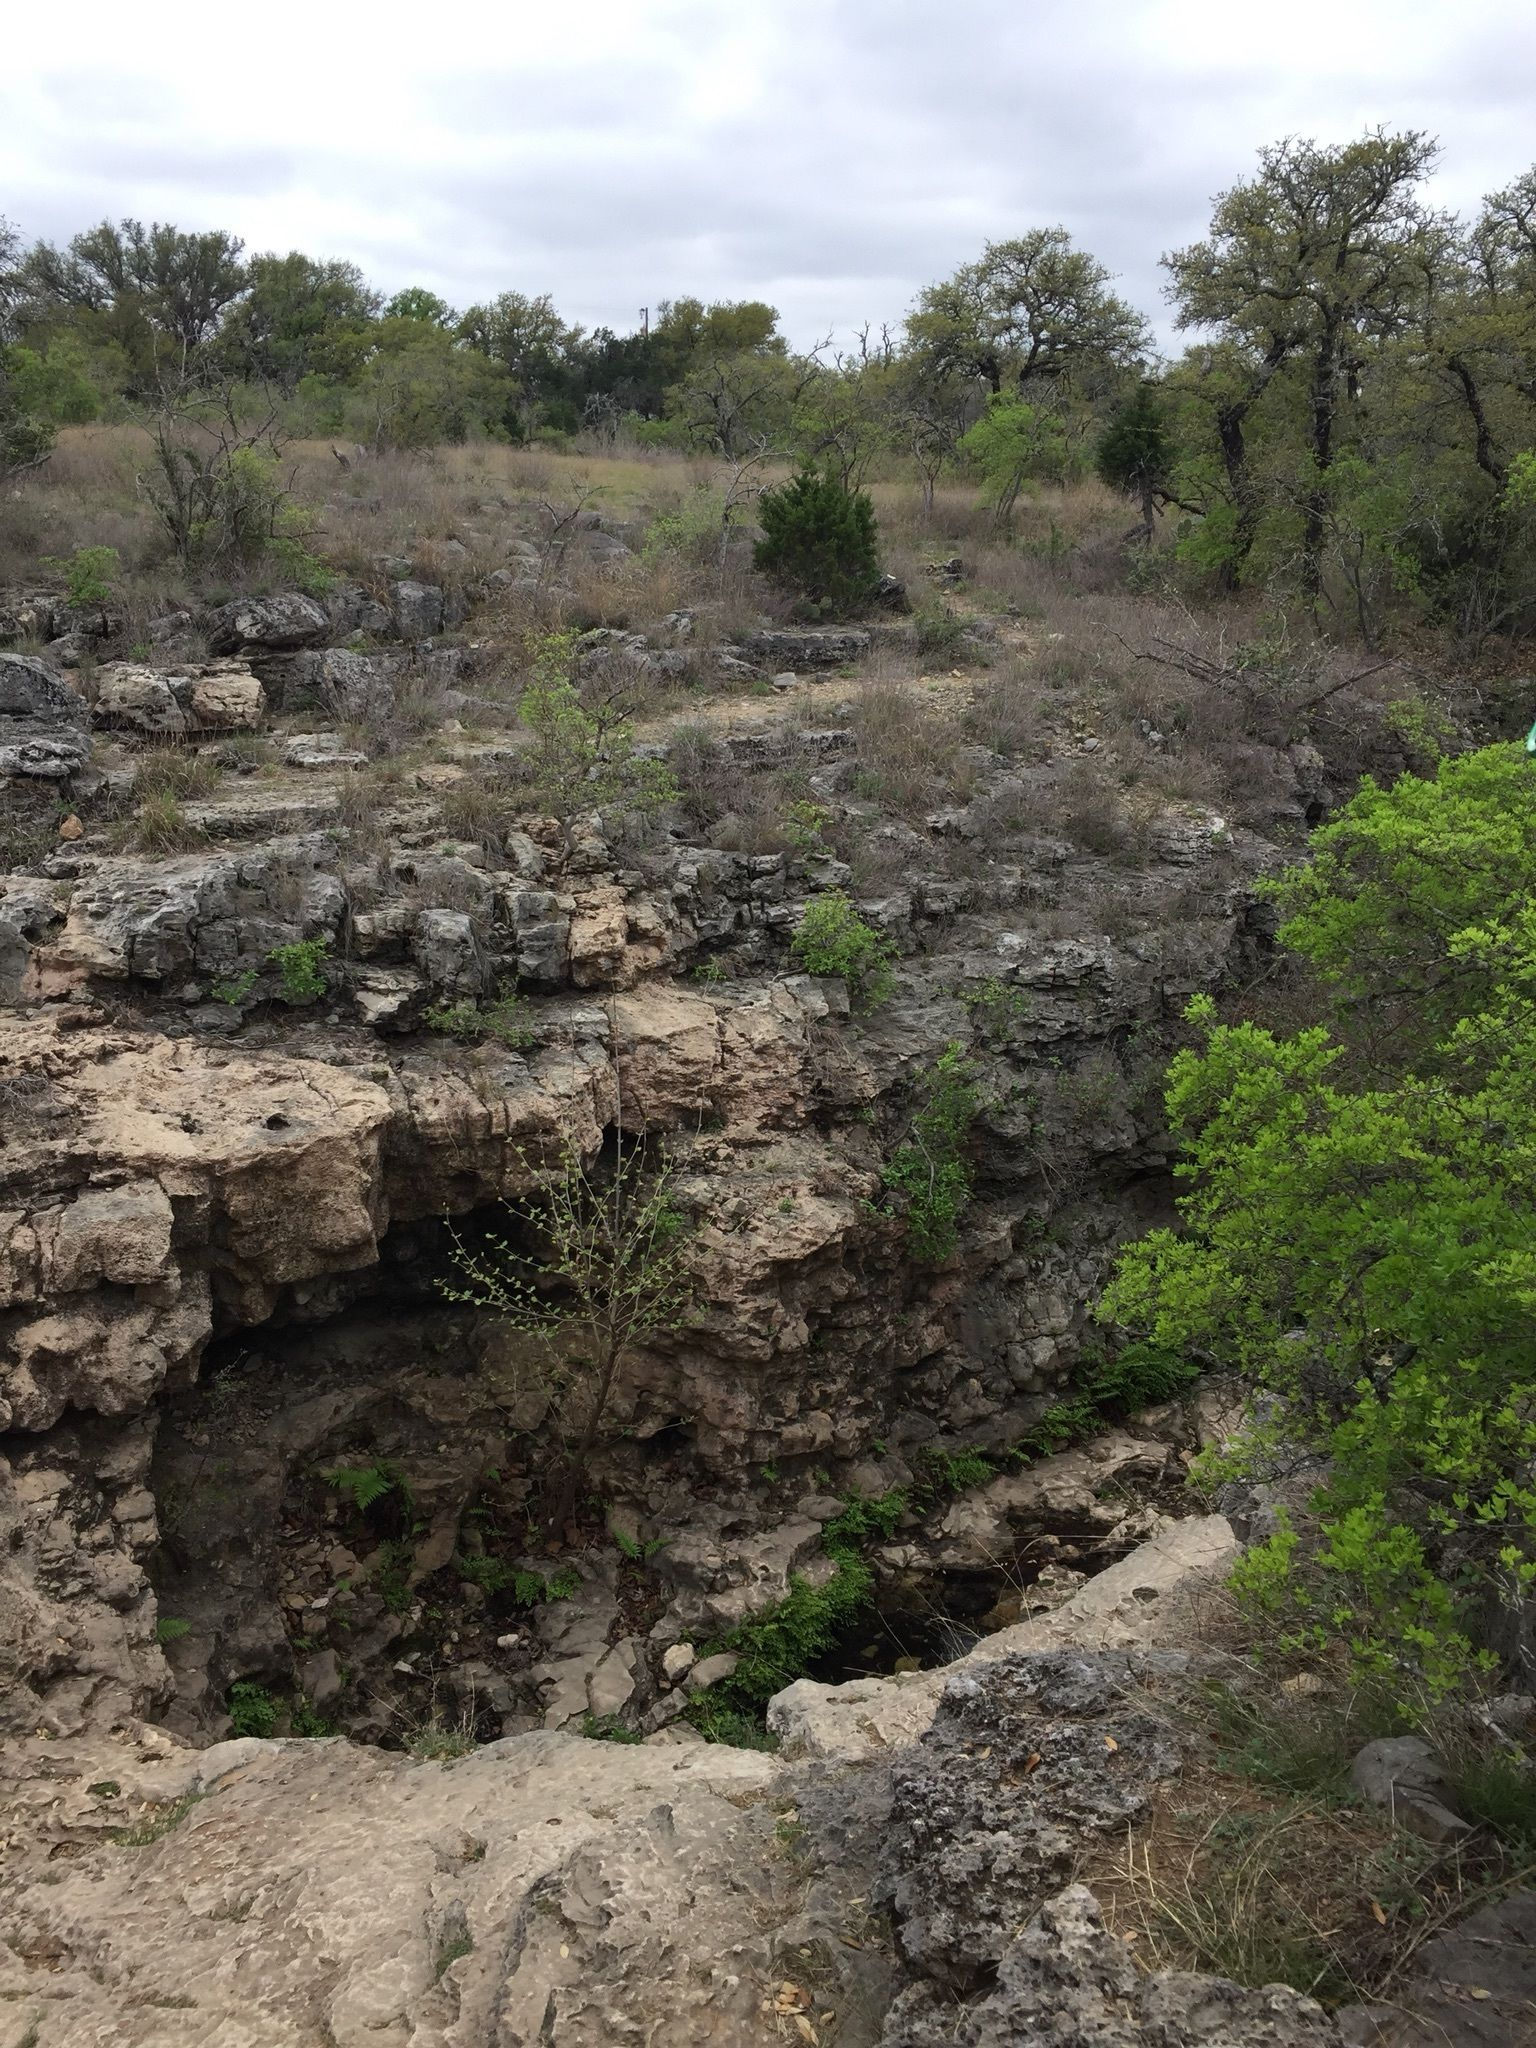 Best Trails Near Dripping Springs, Texas